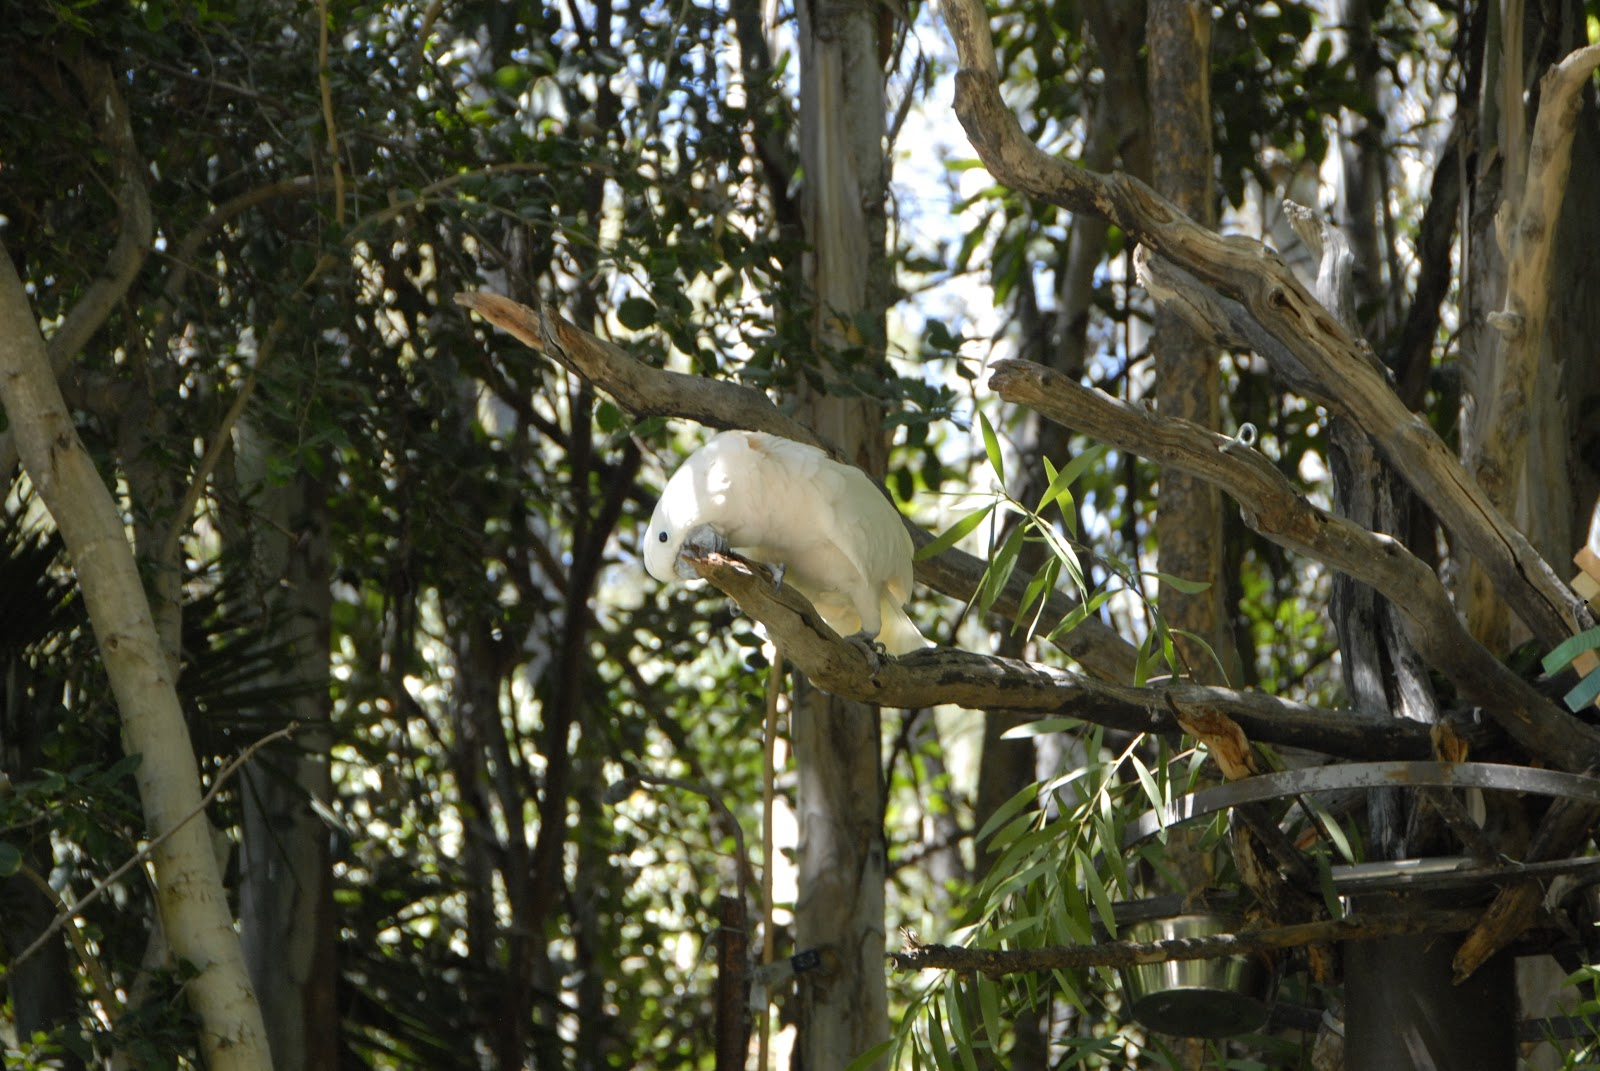 Large white parrot amidst rainforest at the Safari Park: LadyD Books